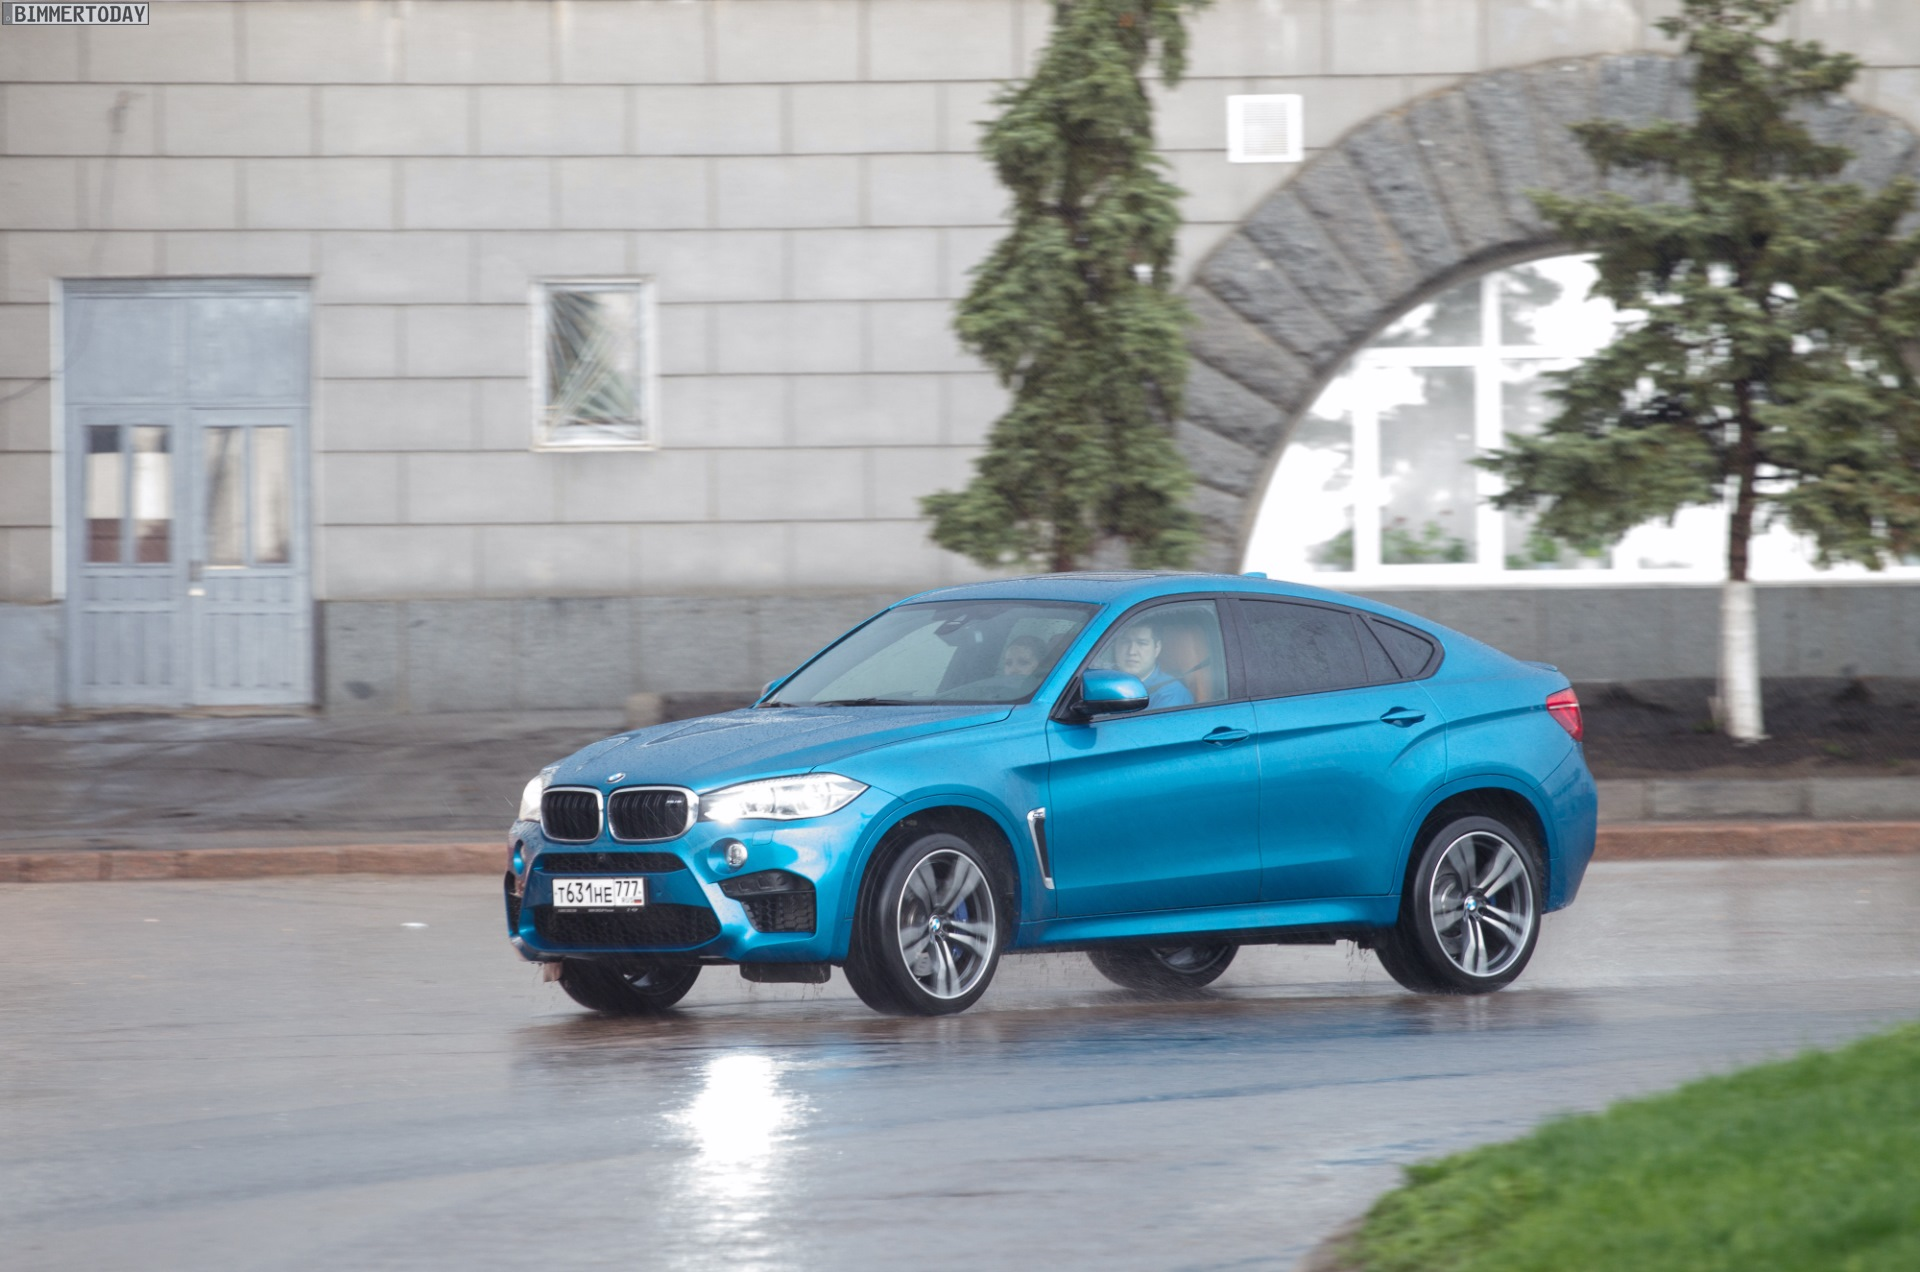 Bmw X6 M Vs All Other Uber Suvs